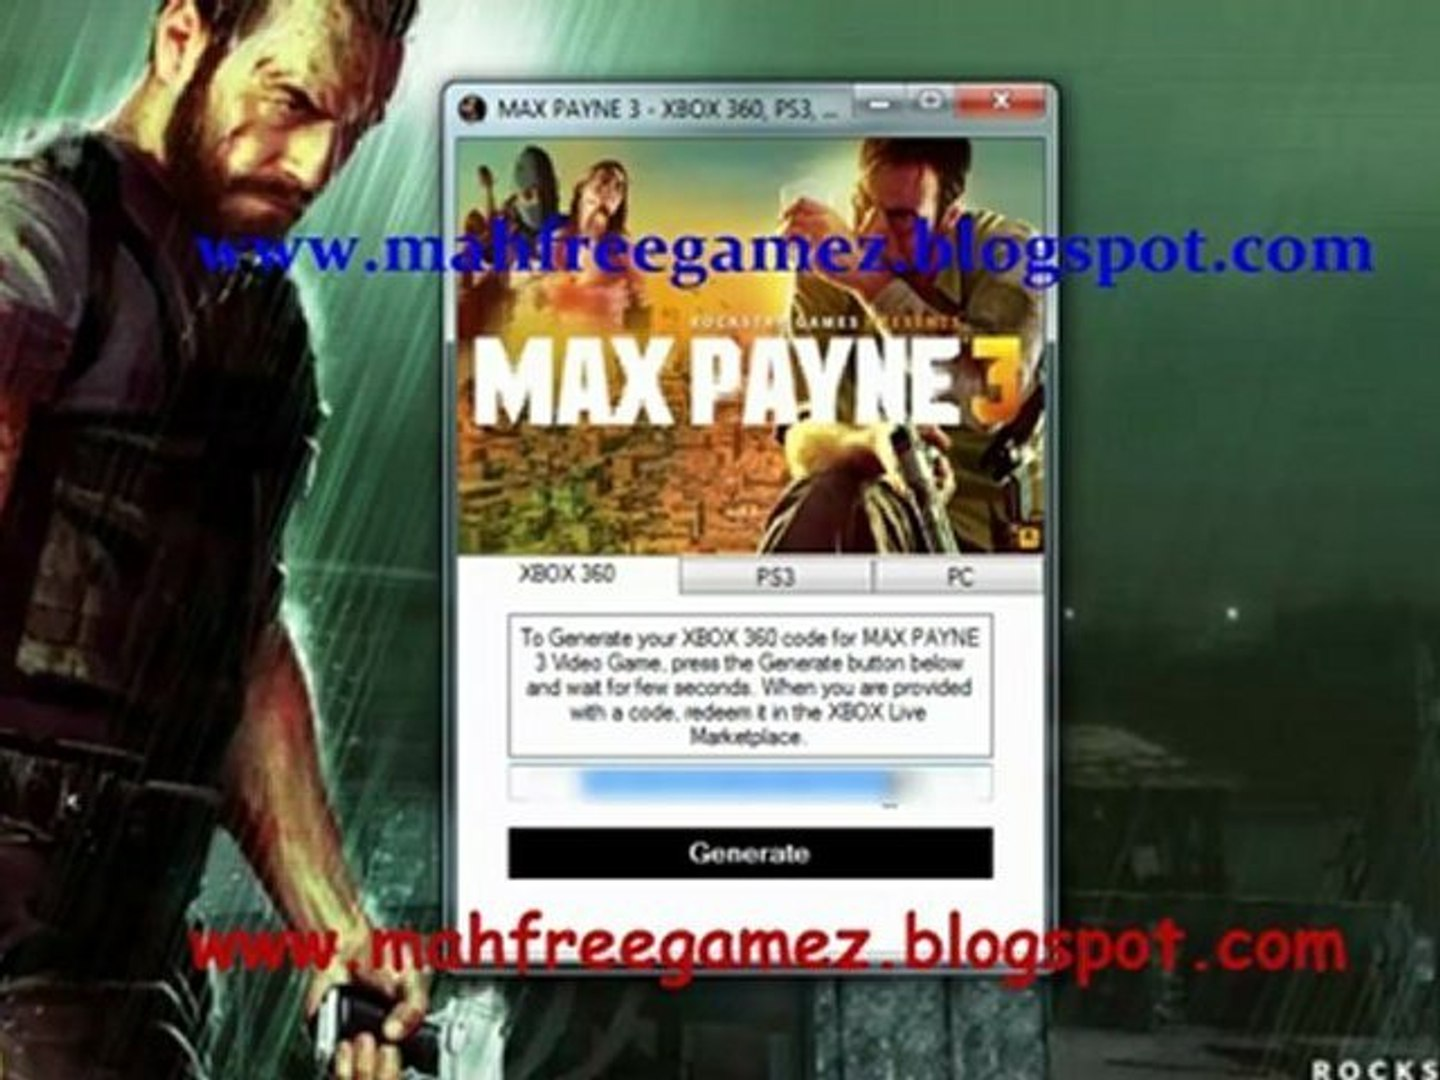 How To Download Max Payne 3 Game On Your Xbox 360 Ps3 Pc